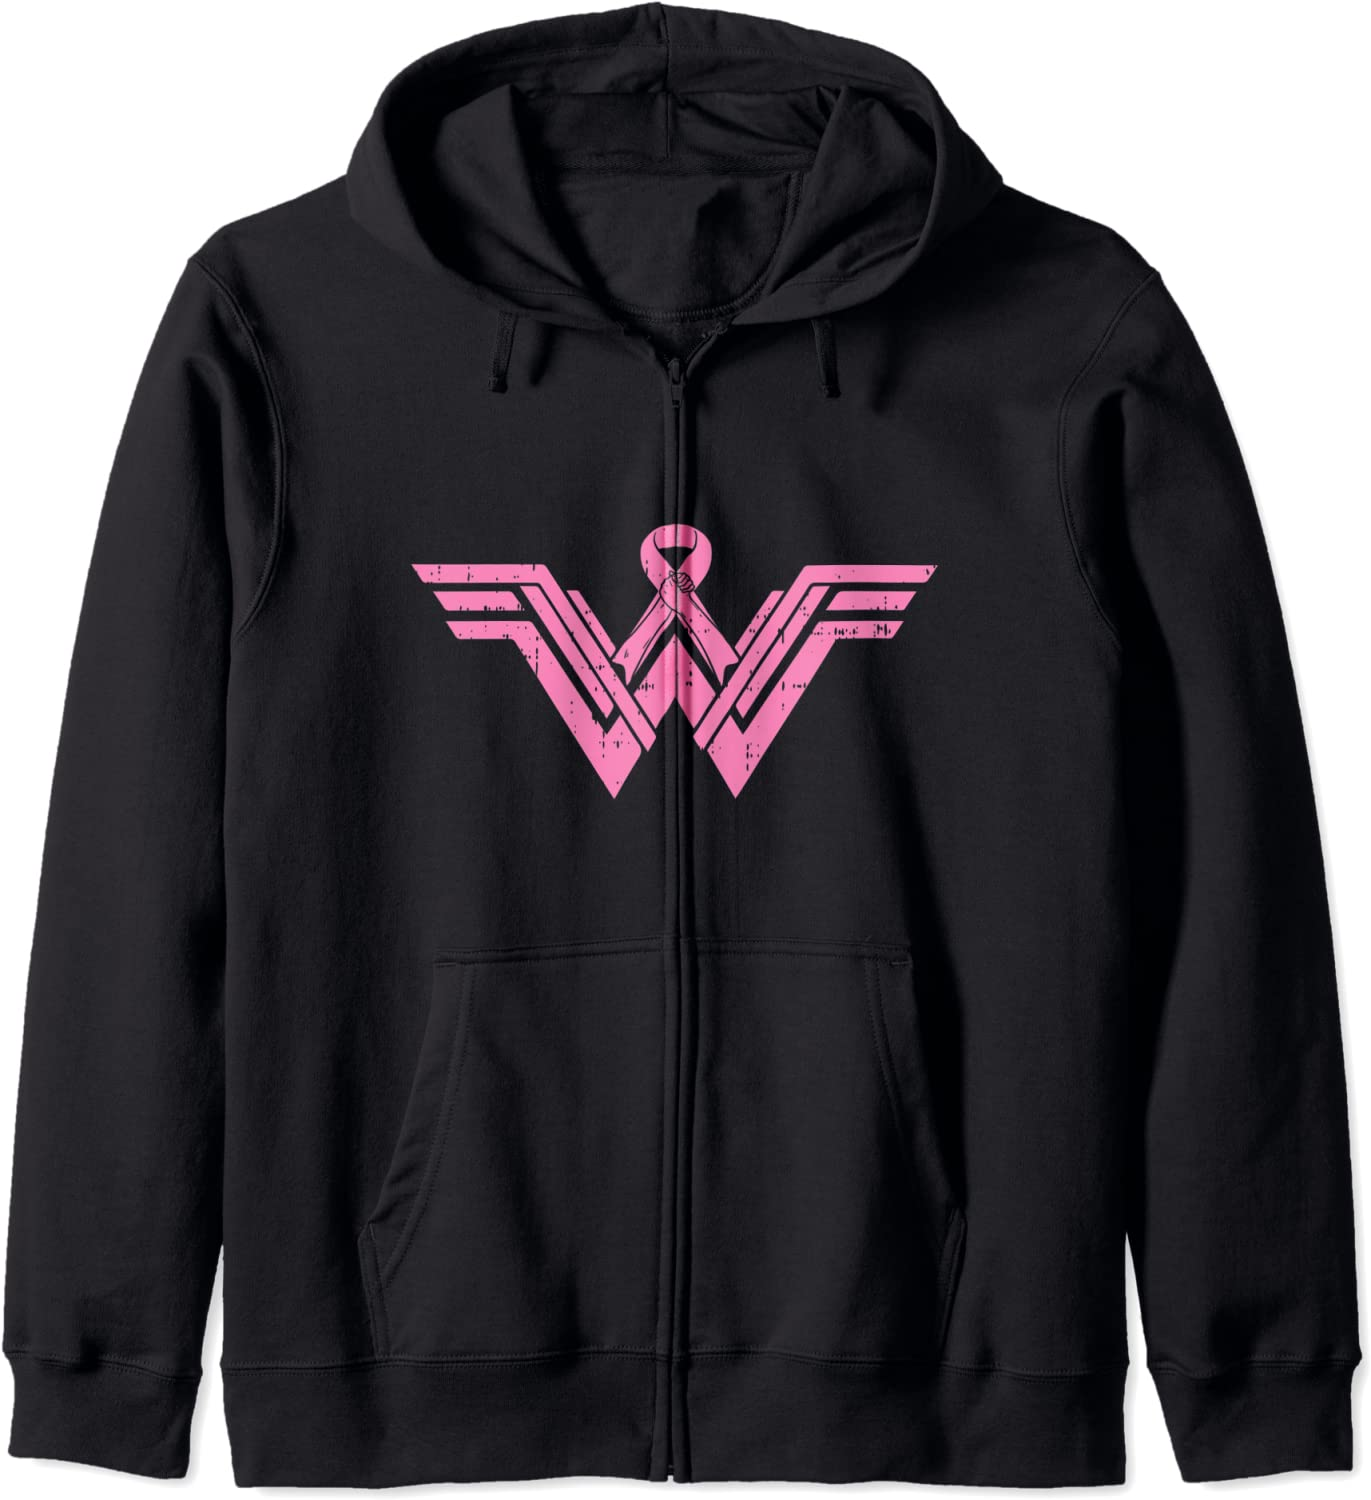 At the price of surprise Superhero Pink Ribbon Breast Cancer Awareness Wife Gift Zip shop Mom